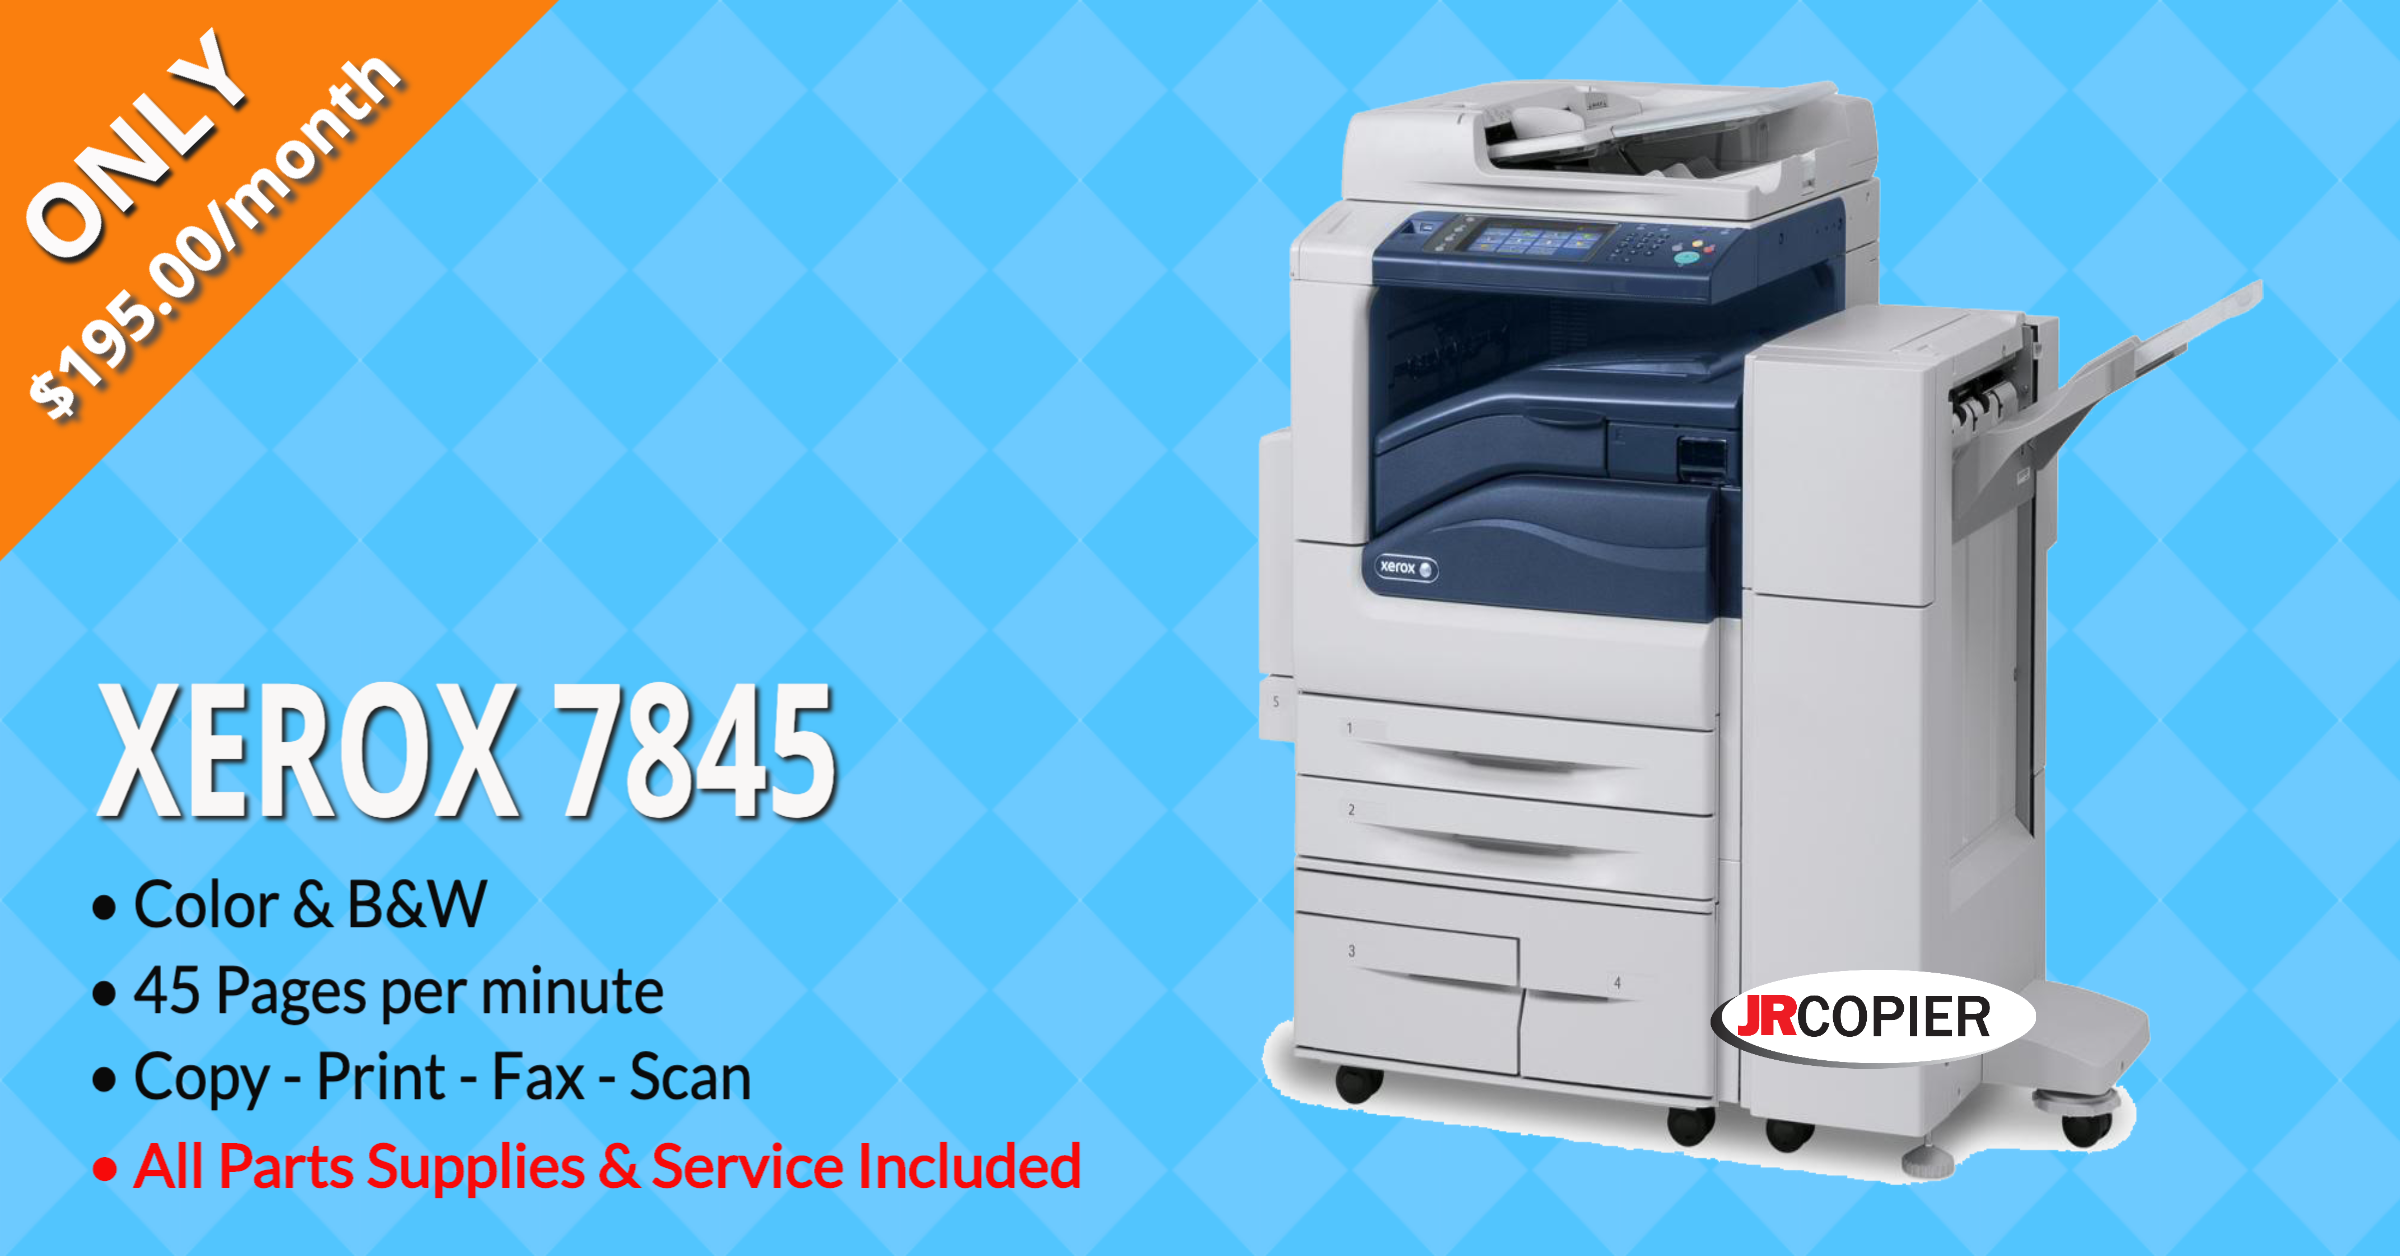 Multifunction Printer Sales 55411, 55416, 55422, 55426, 55427